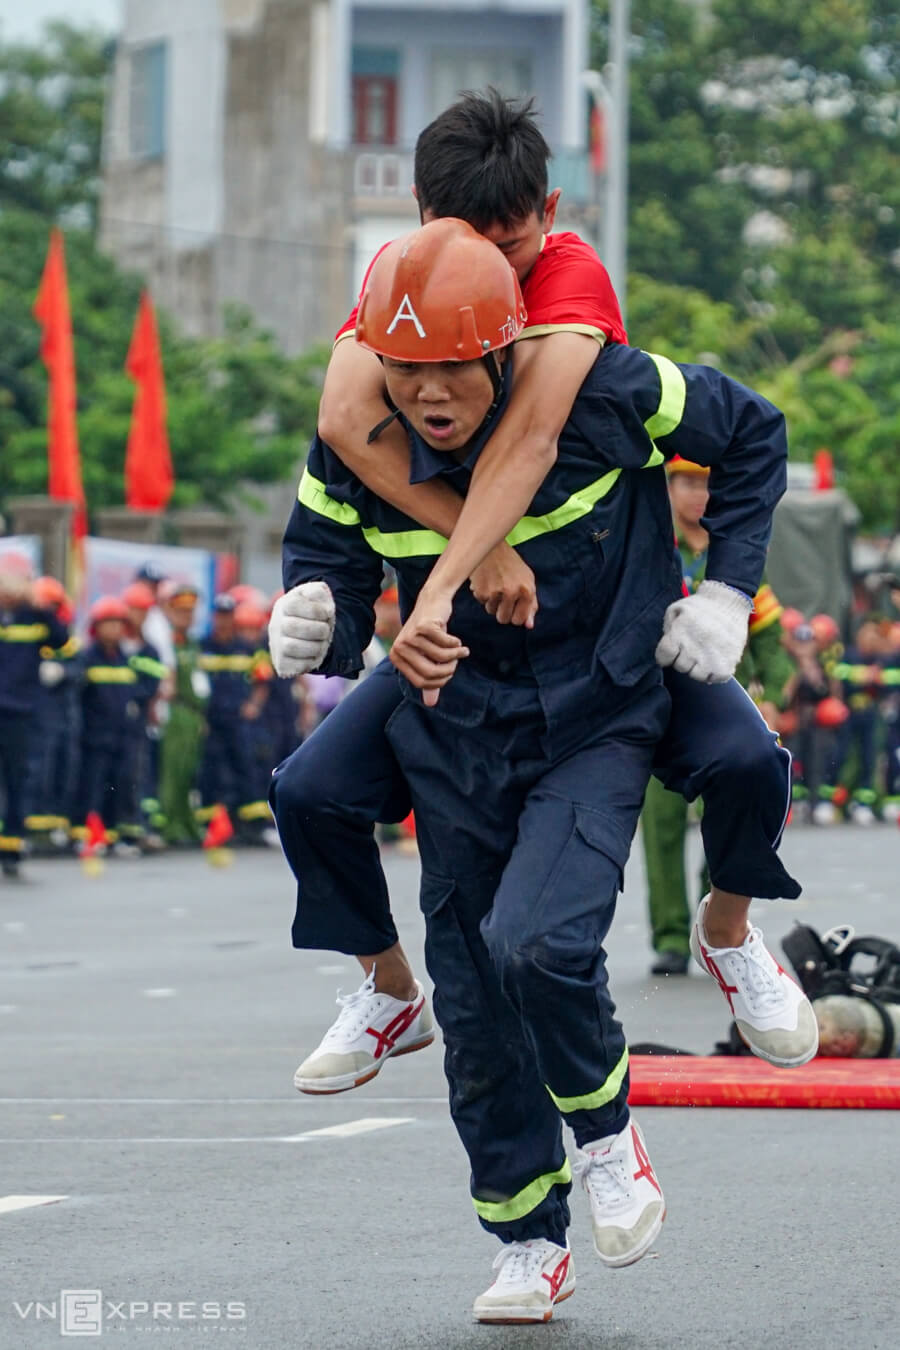 Firefighters fight each other in southern Vietnam contest